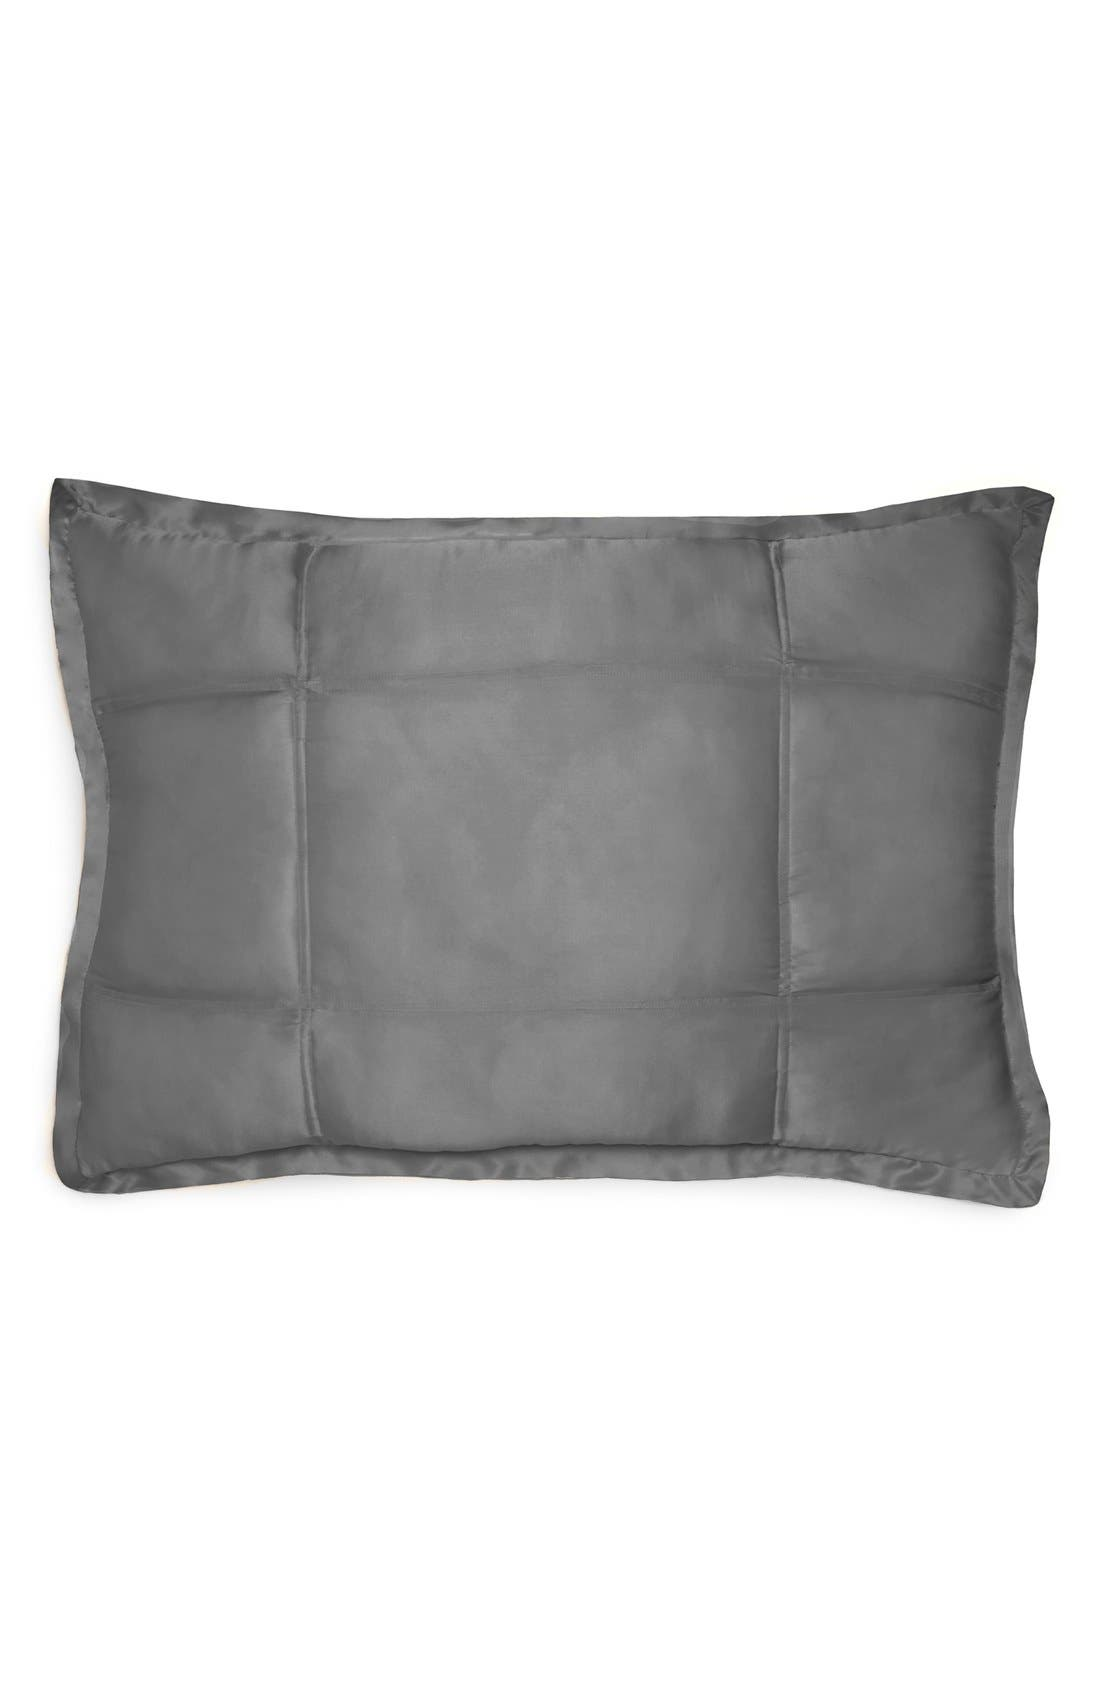 Donna Karan Collection 'Surface' Silk Charmeuse Quilted Pillow Sham,                             Main thumbnail 1, color,                             Charcoal